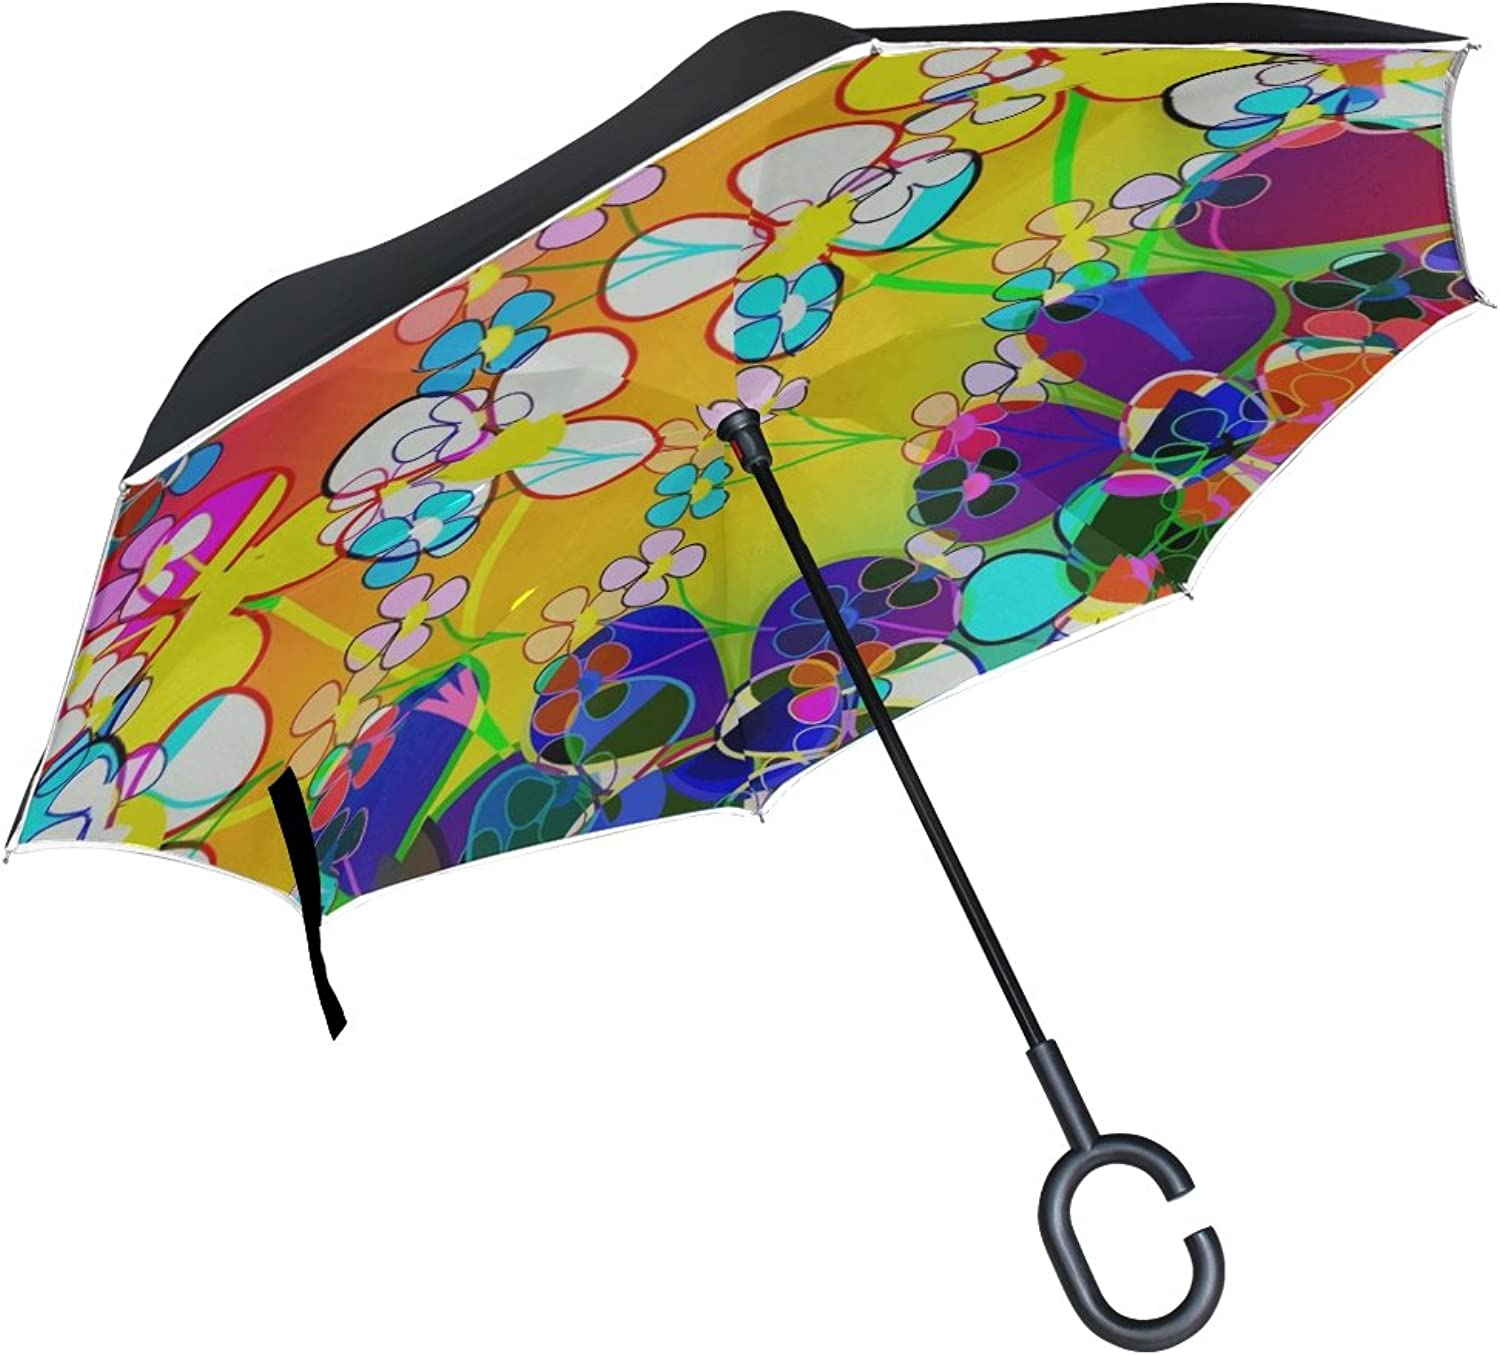 Double Layer Ingreened Abstract Design Texture Umbrellas Reverse Folding Umbrella Windproof Uv Predection Big Straight Umbrella for Car Rain Outdoor with CShaped Handle